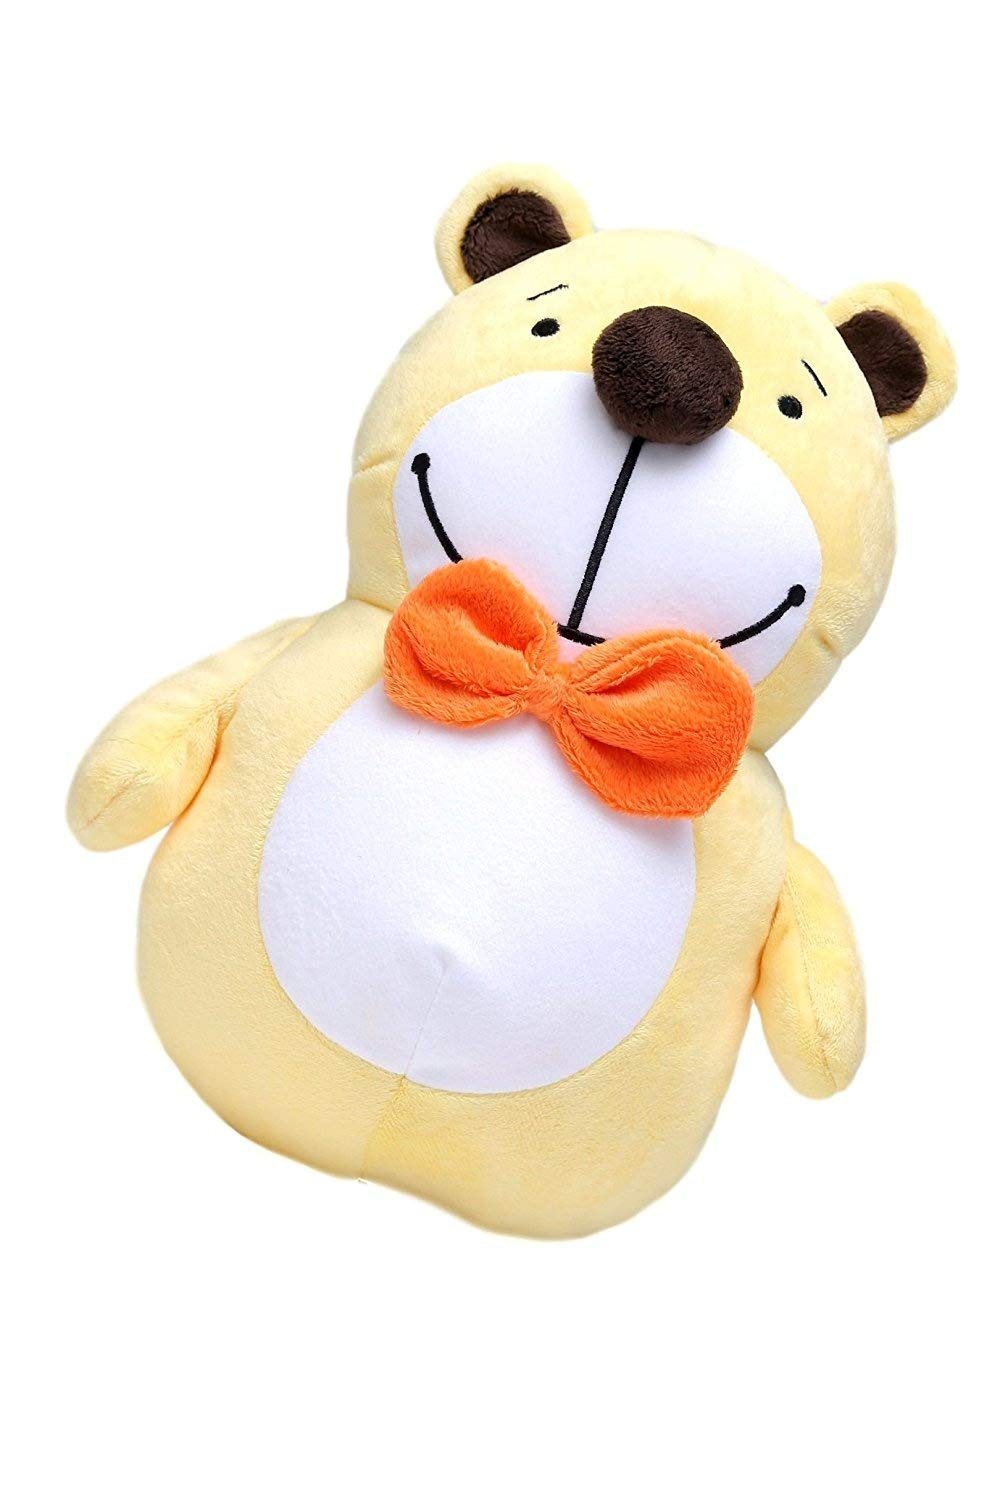 Fun Travel Neck Pillow Changes To Stuffed Animal Toy For Your Child -- Firm Support U-Shape Keeps Head Upright and Comfortable Even on Long Car and Plane Trips. Makes a Great Carry-On or Gift bozemanbabycompany